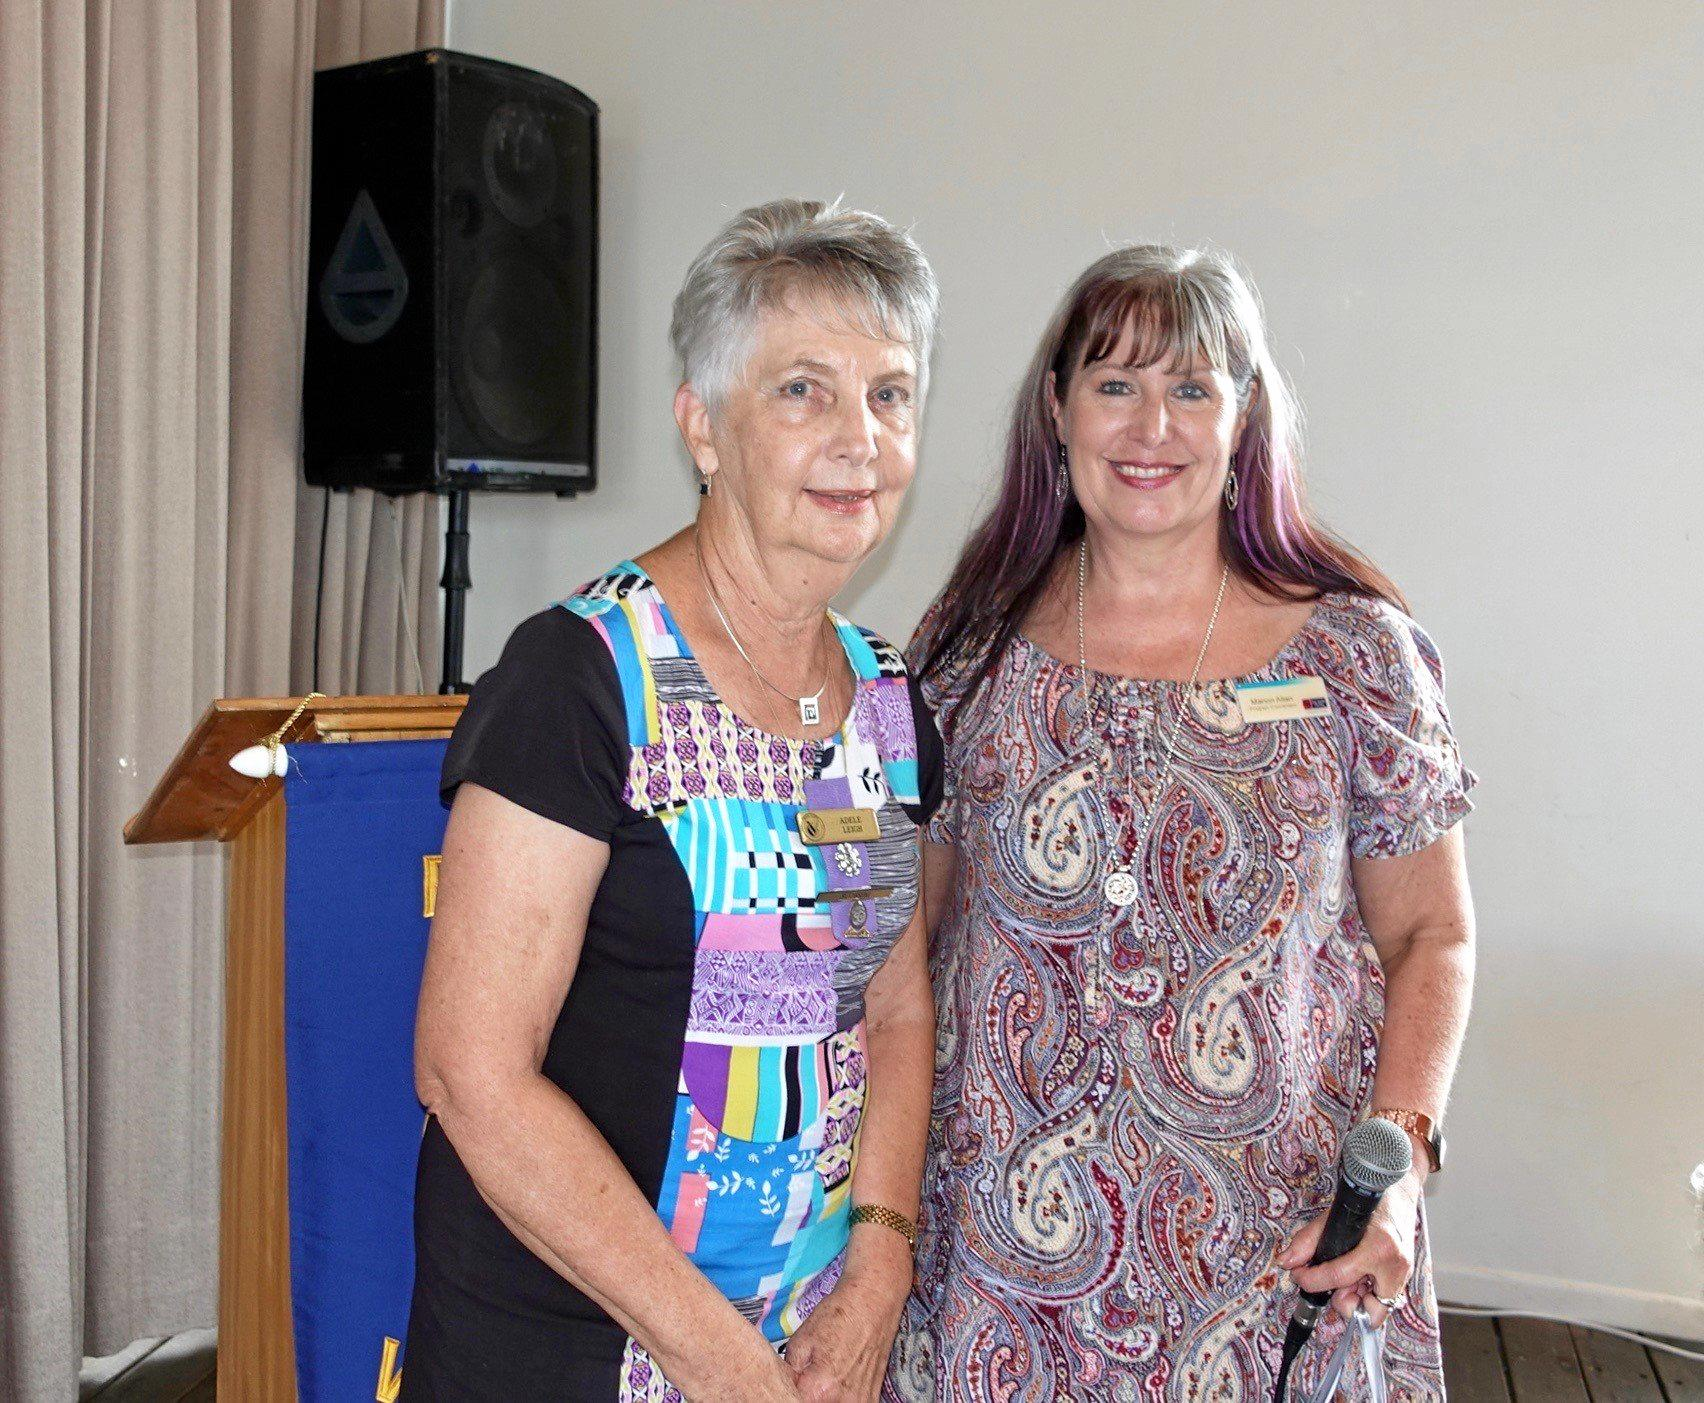 SUNSHINE SMILES: Buderim VIEW Club's Adele Leigh thanks the guest speaker Marion Allan, who is the Sunshine Coast program co-ordinator for Learning for Life for The Smith Family charity.